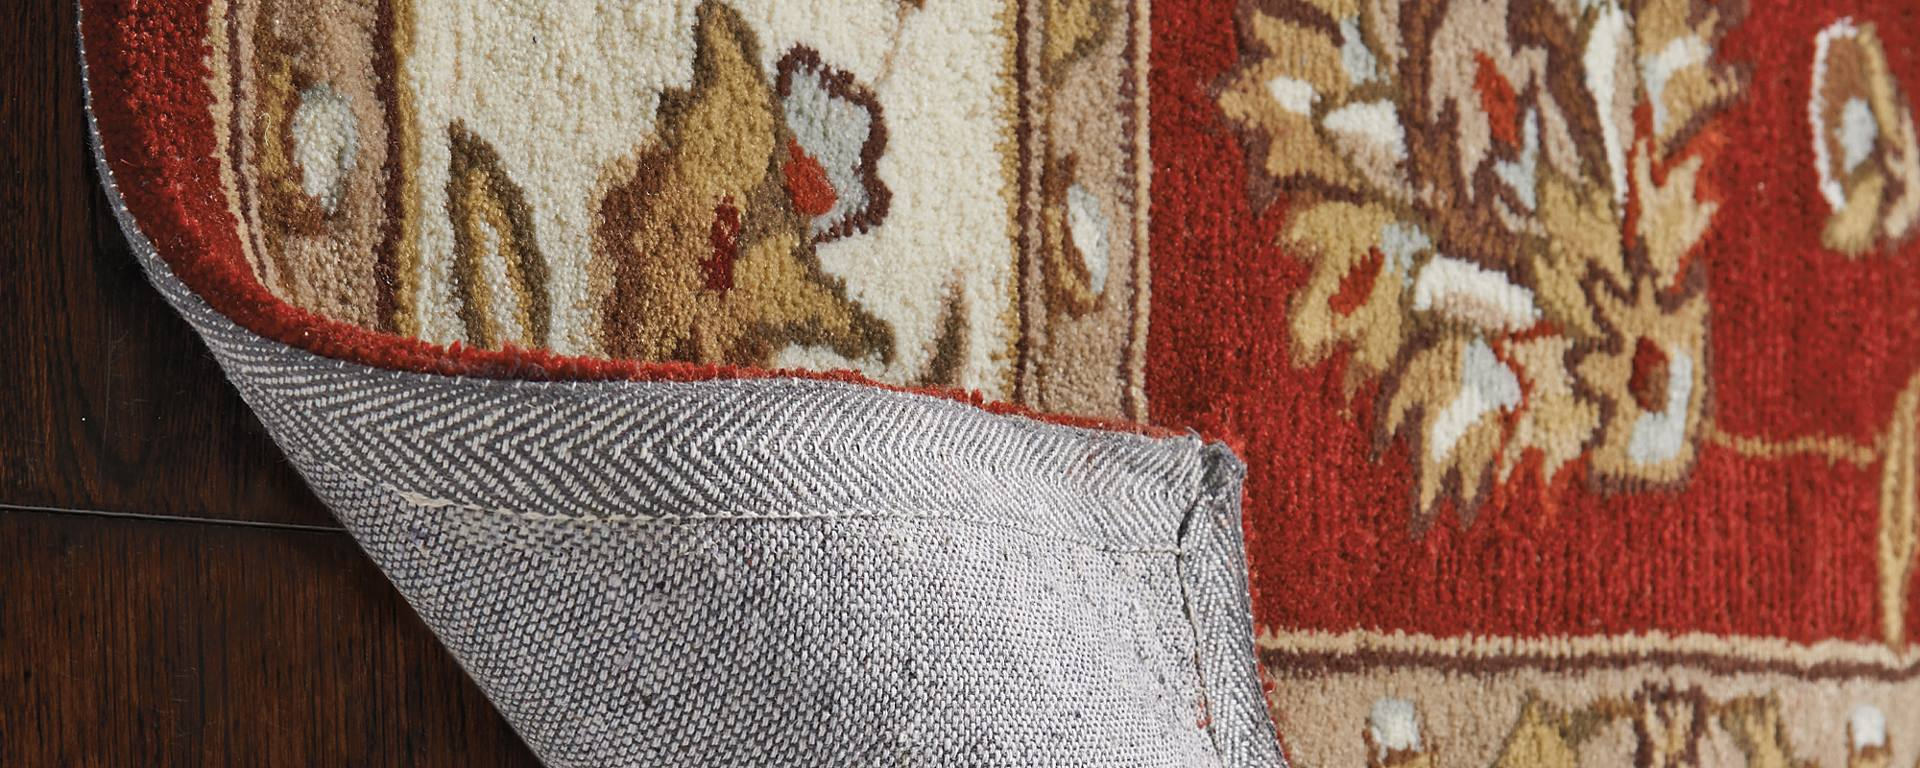 Just As The Details Shape Timeless Character And Eal Of Fine Furnishings So It Is With Area Rugs Whether You Re Seeking A Hand Knotted Heirloom Or